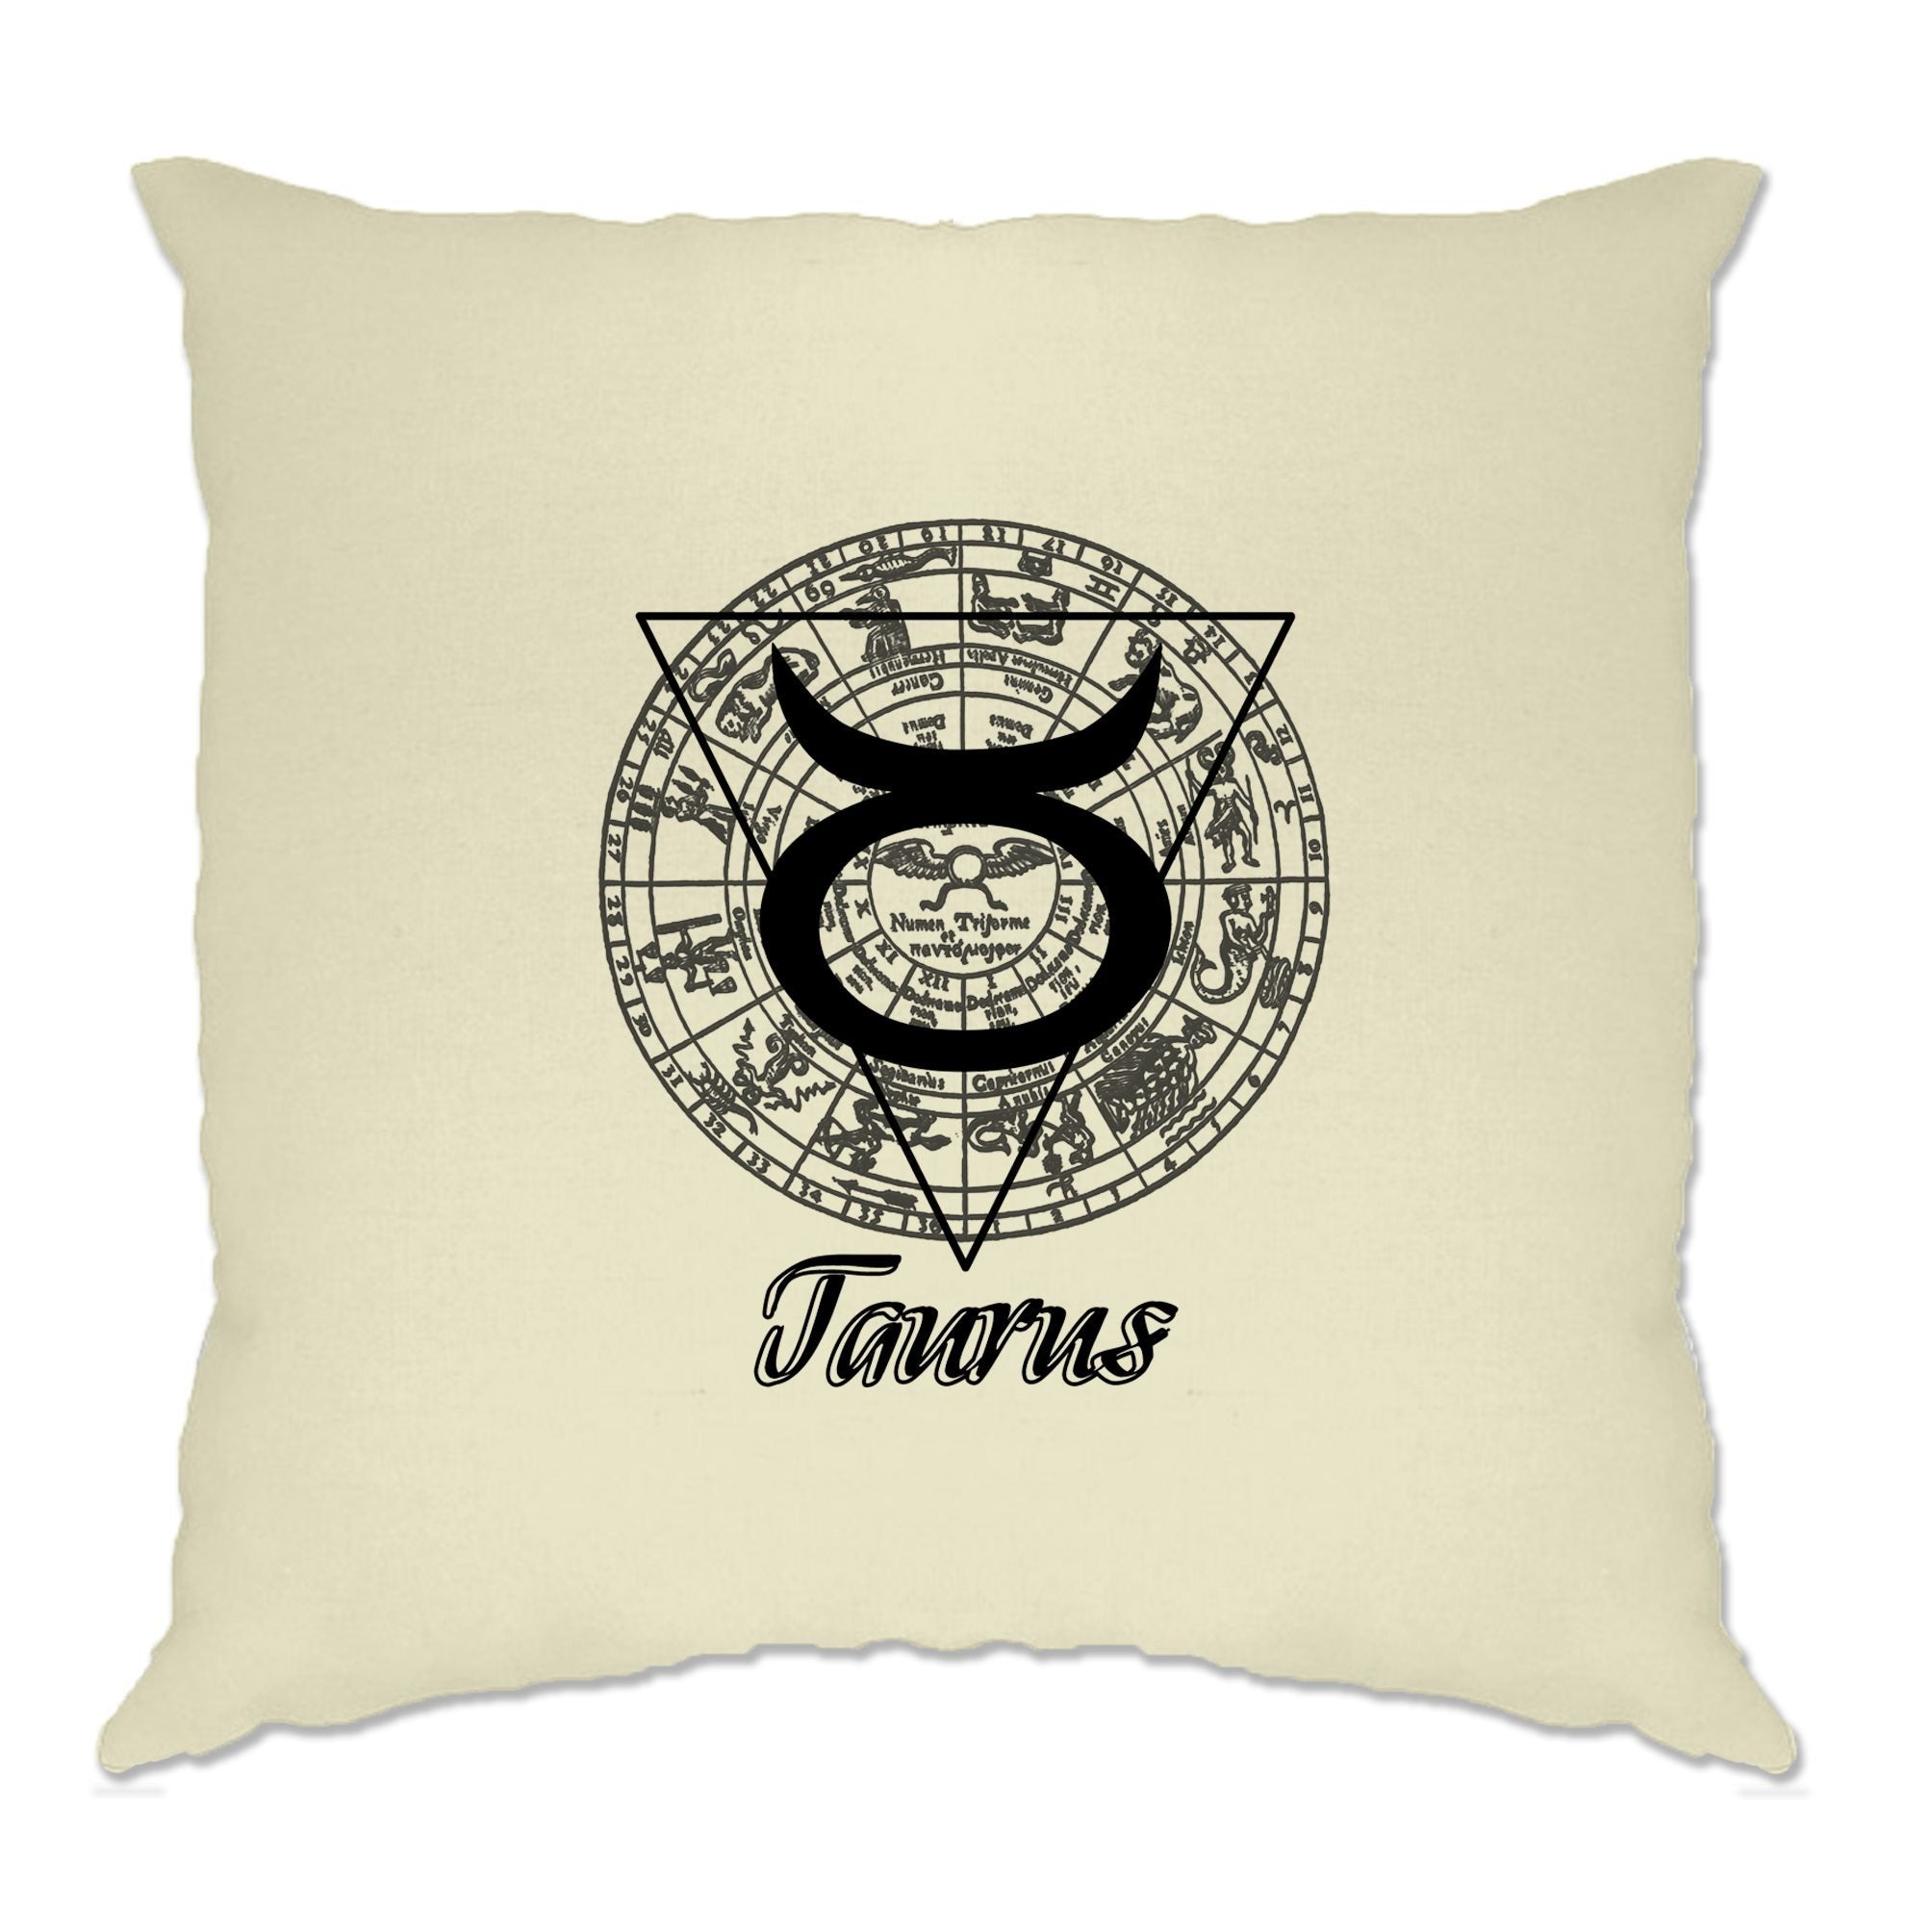 Horoscope Cushion Cover Taurus Zodiac Star Sign Birthday